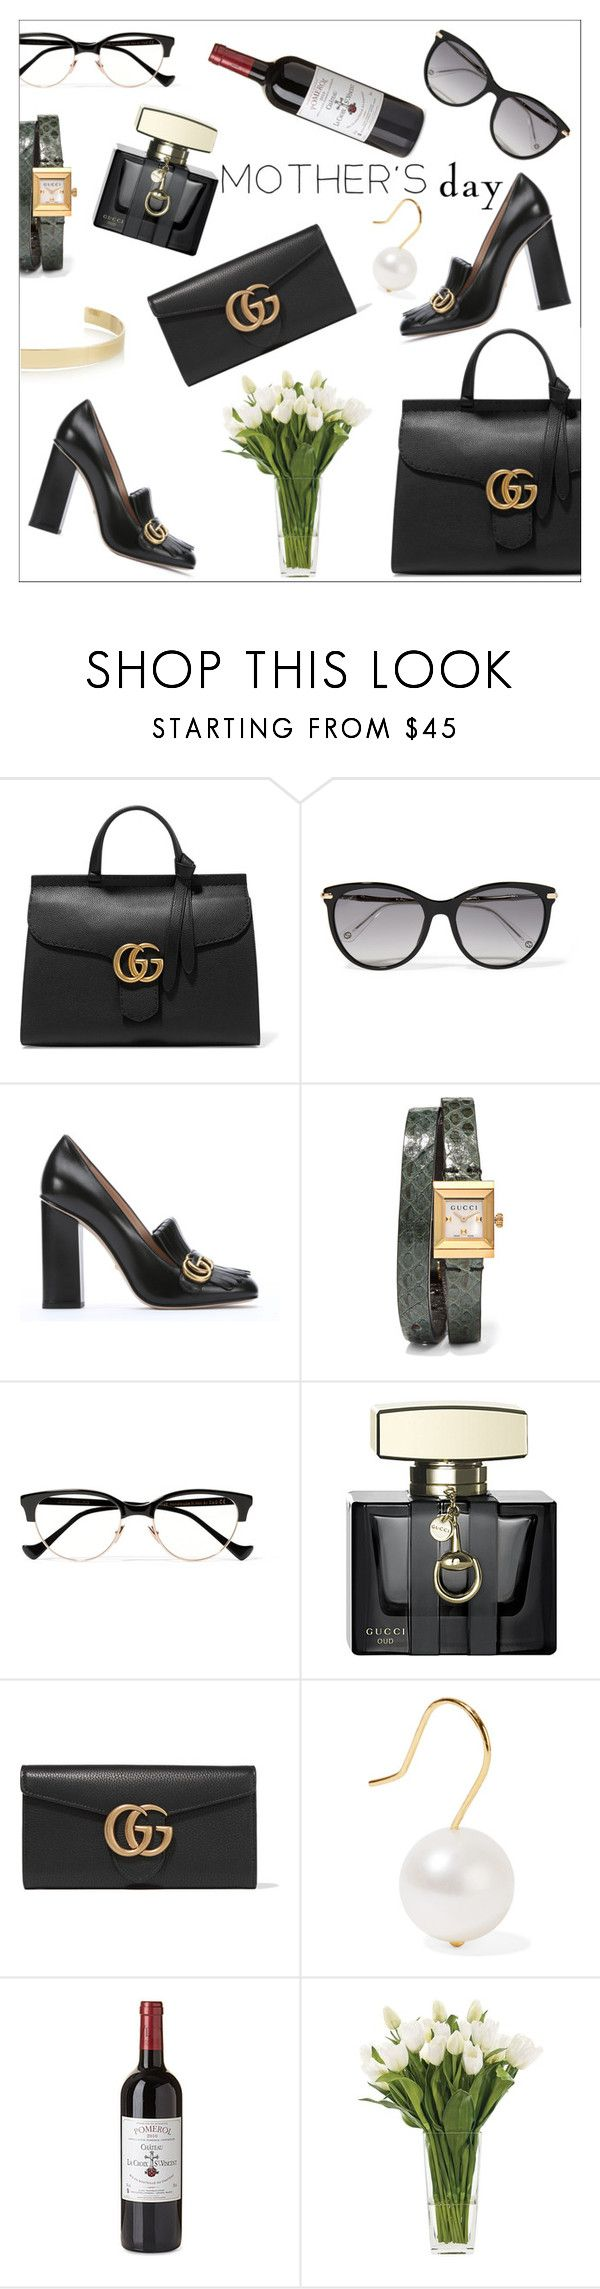 """""""Mother's Day Gift Guide"""" by danielle-487 ❤ liked on Polyvore featuring Gucci, Cutler and Gross, Aurélie Bidermann, NDI, Jennifer Fisher and mothersdaygiftguide"""